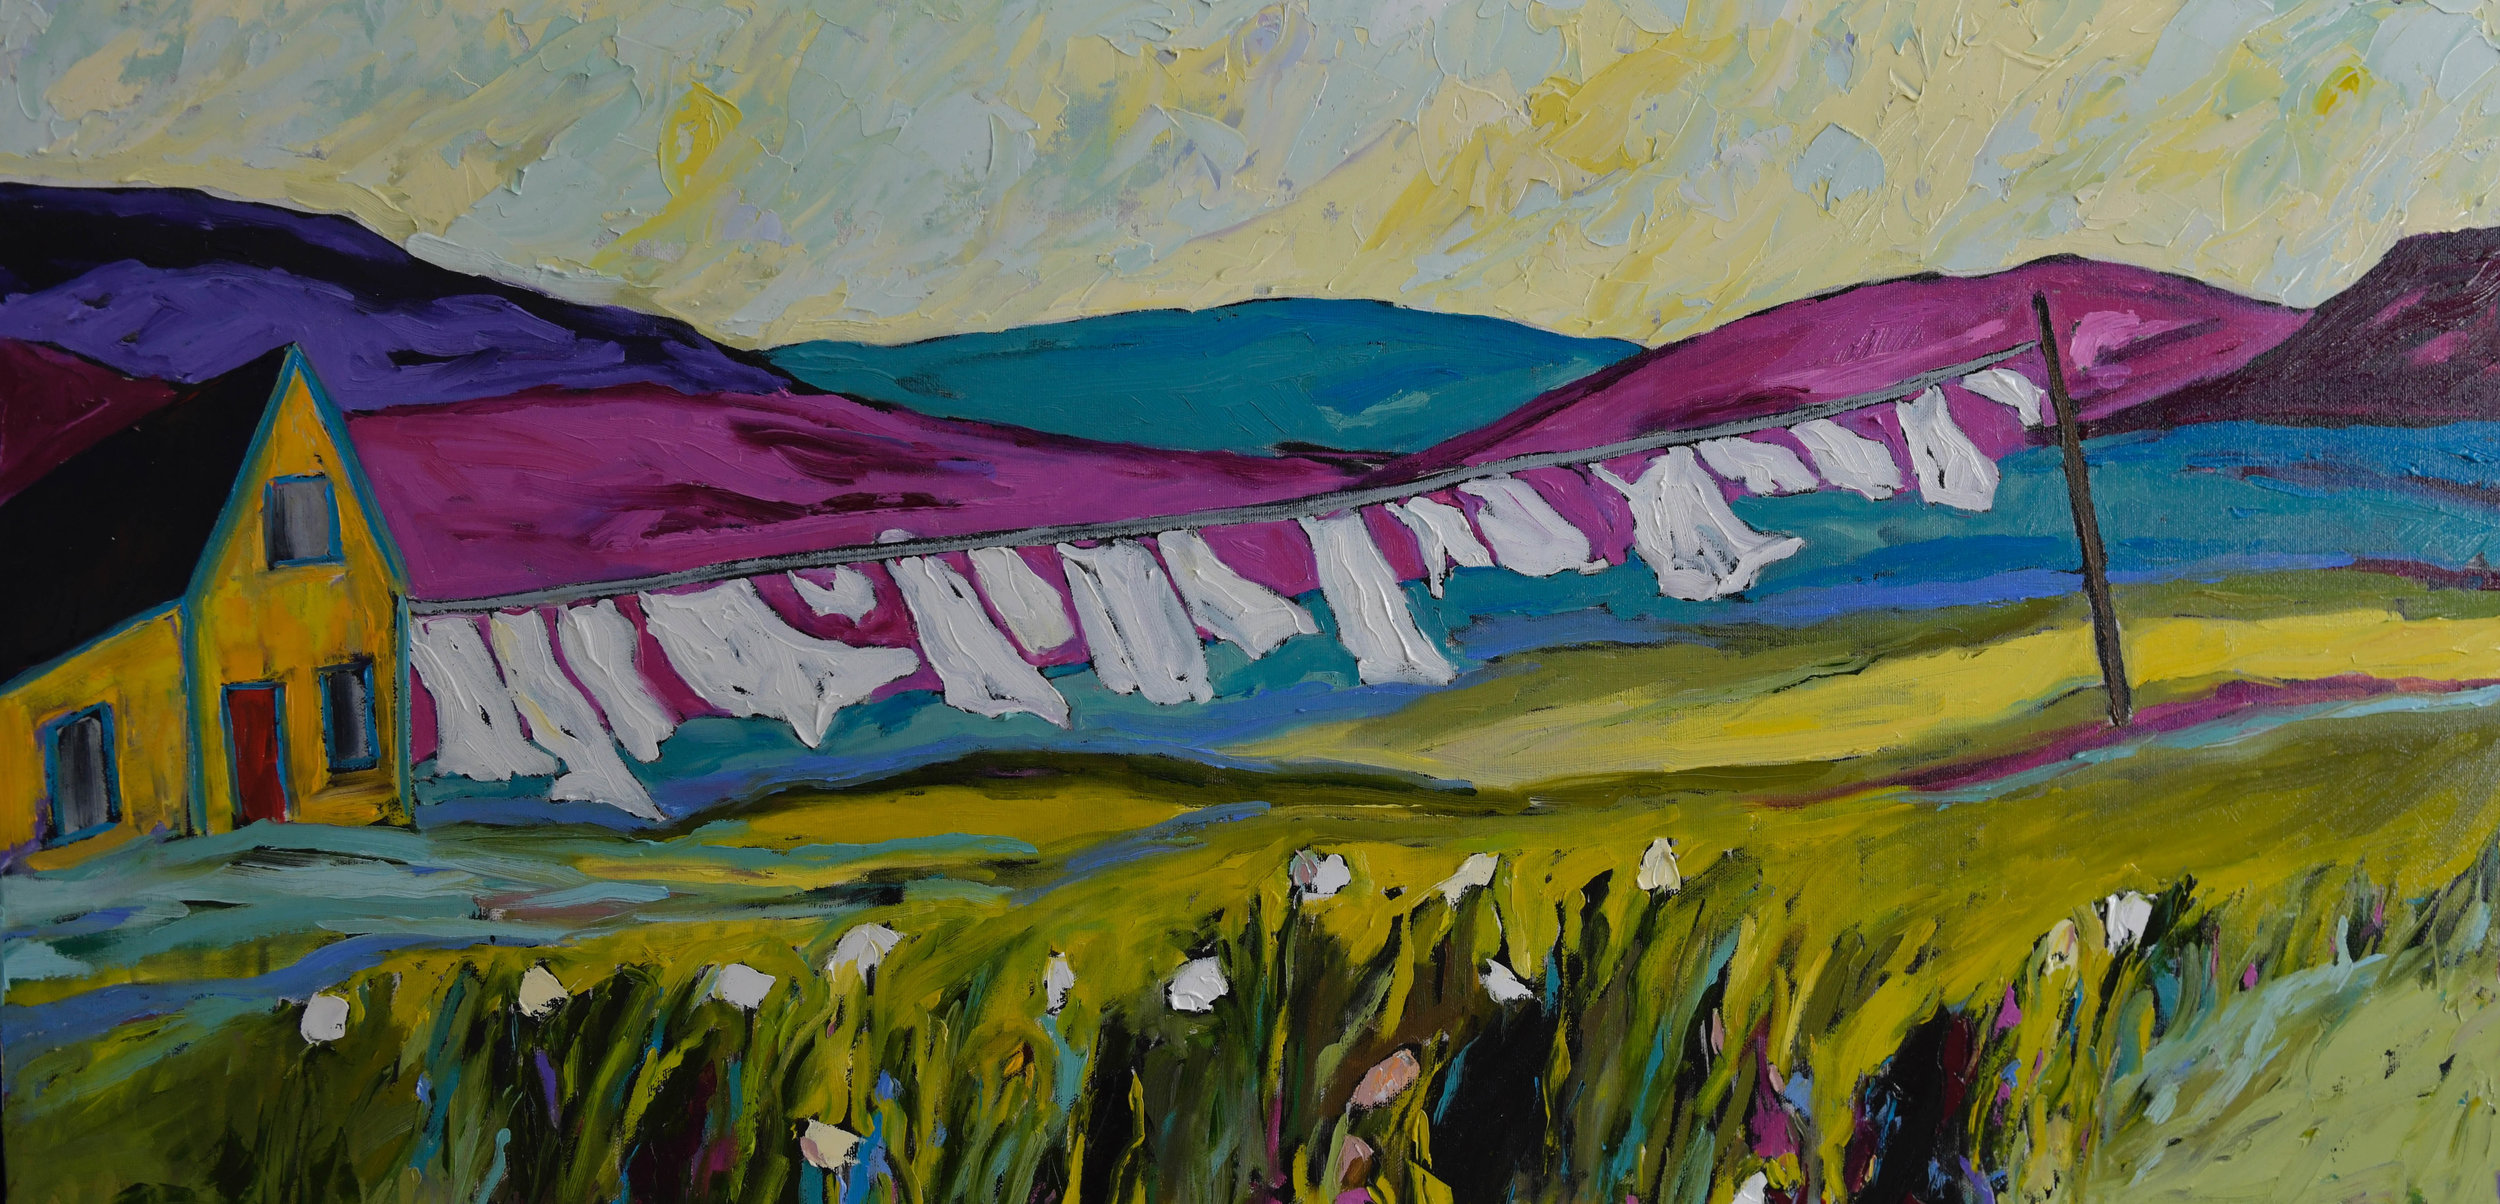 High-Flying Laundry in Low, Quebec 24h 60w Oil on Canvas $1400 Unframed